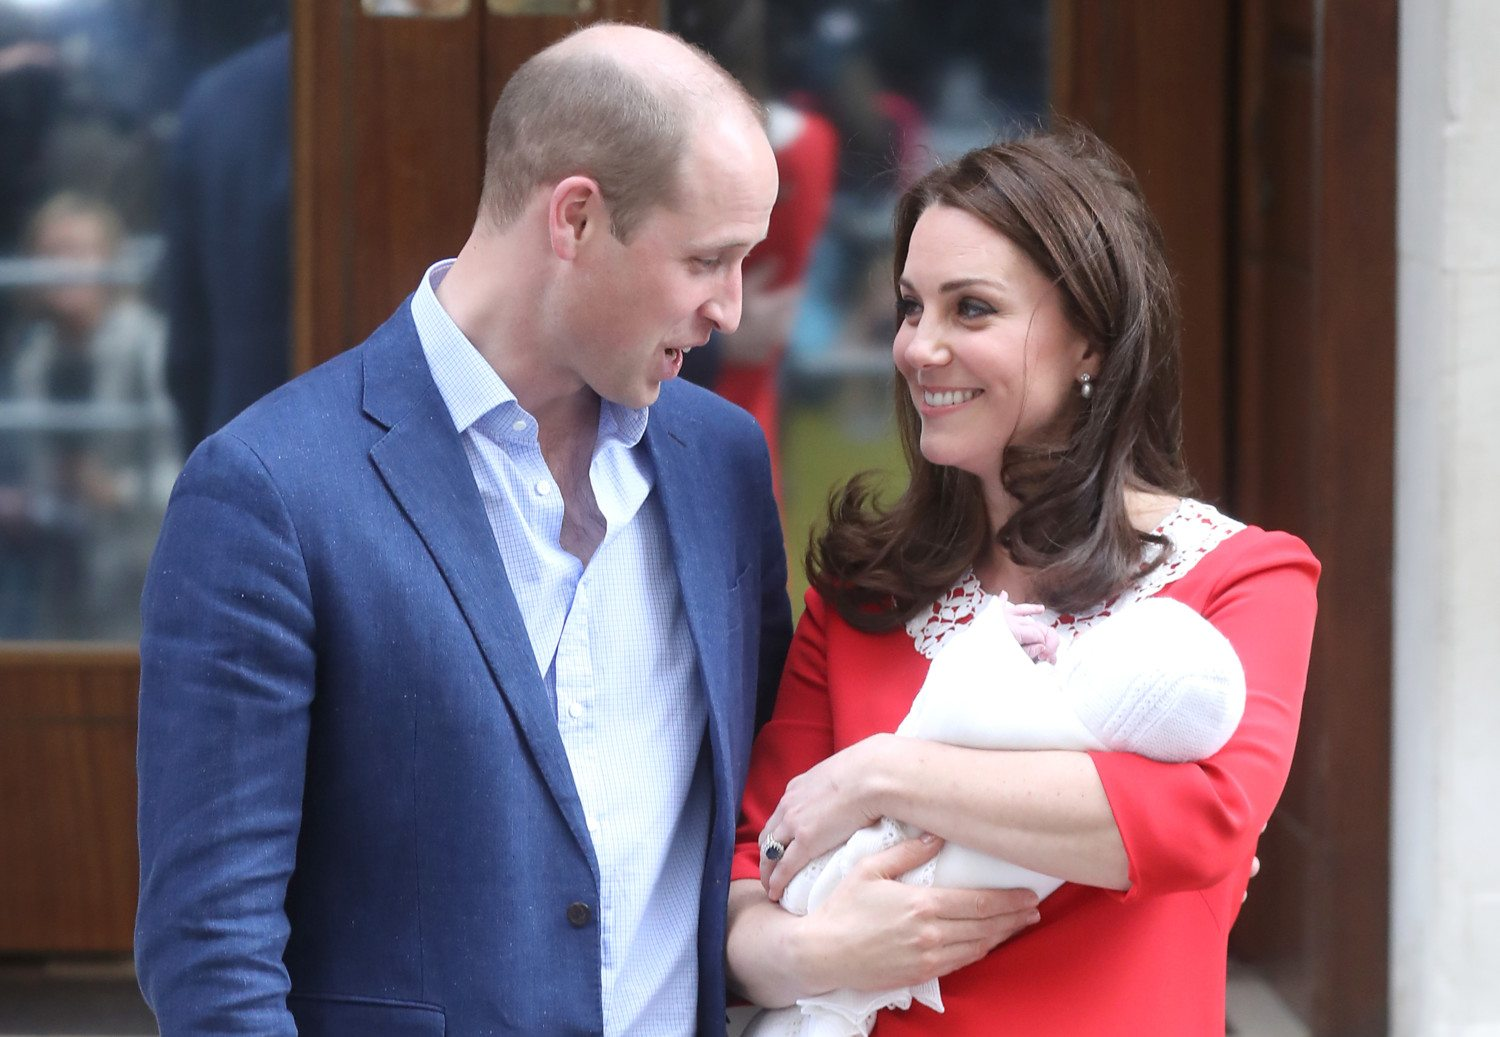 The Duke and Duchess Wants Another Baby